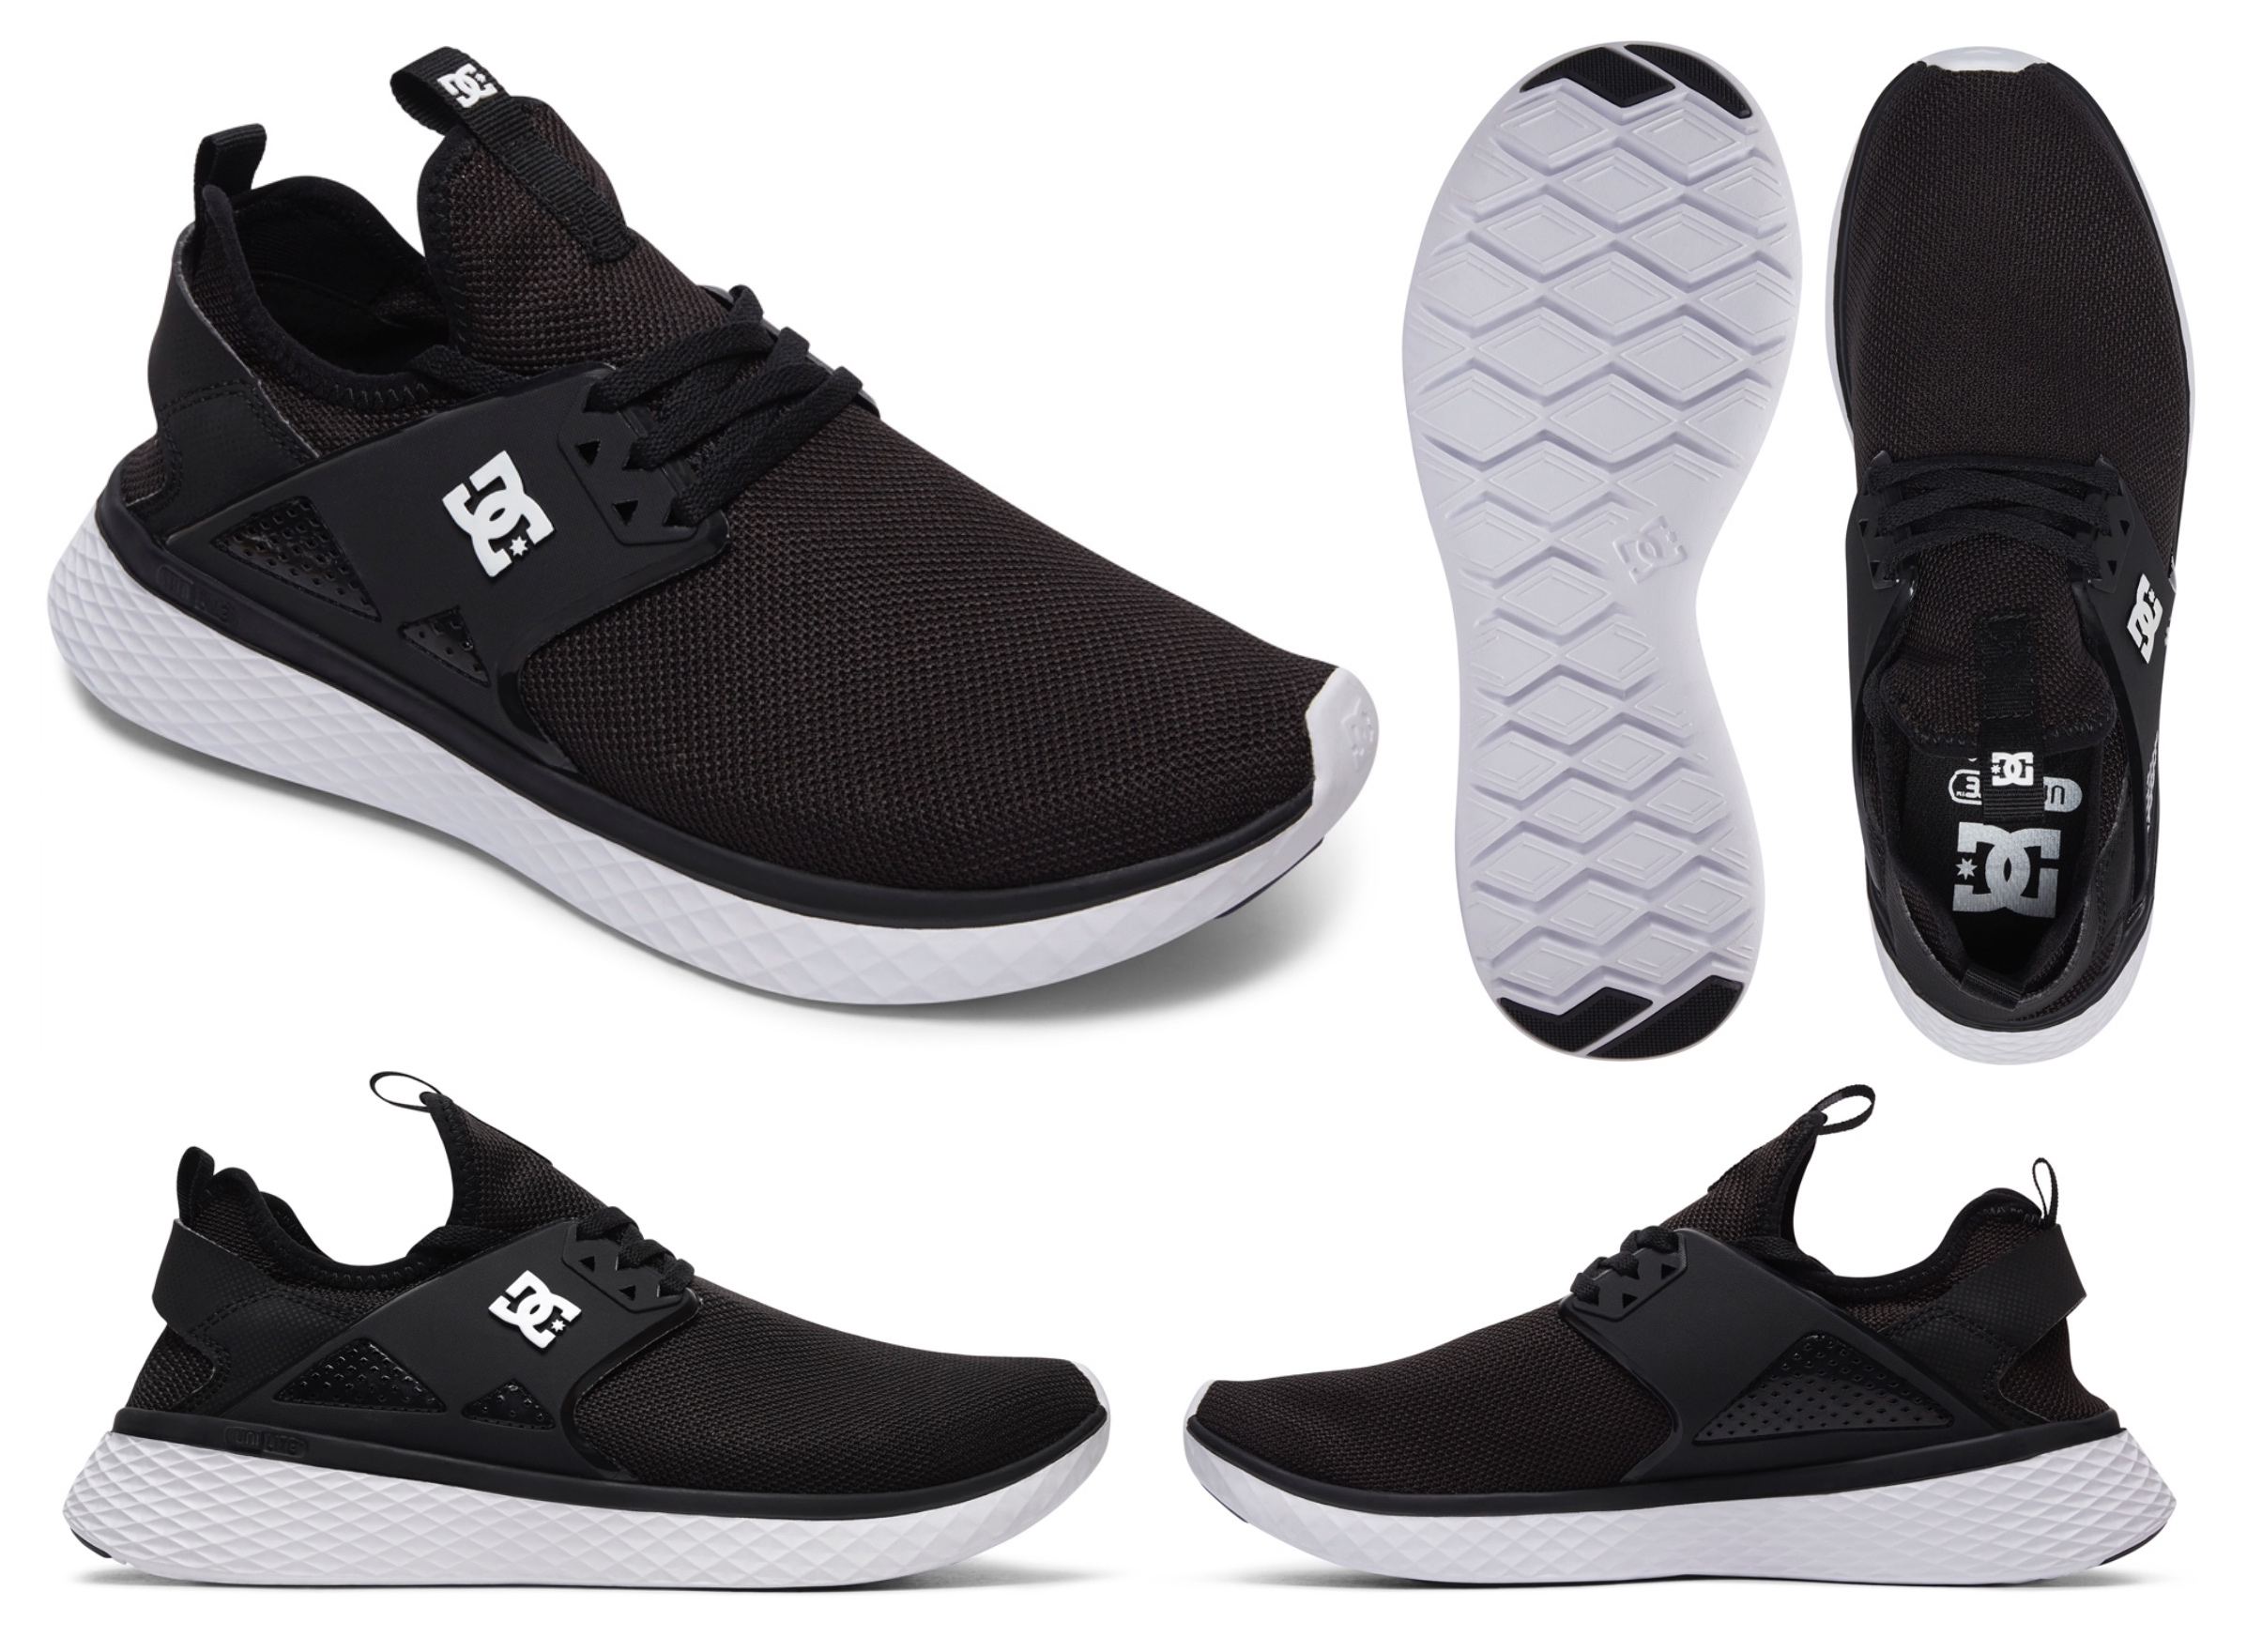 Product feature on the new DC Meridian sneakers